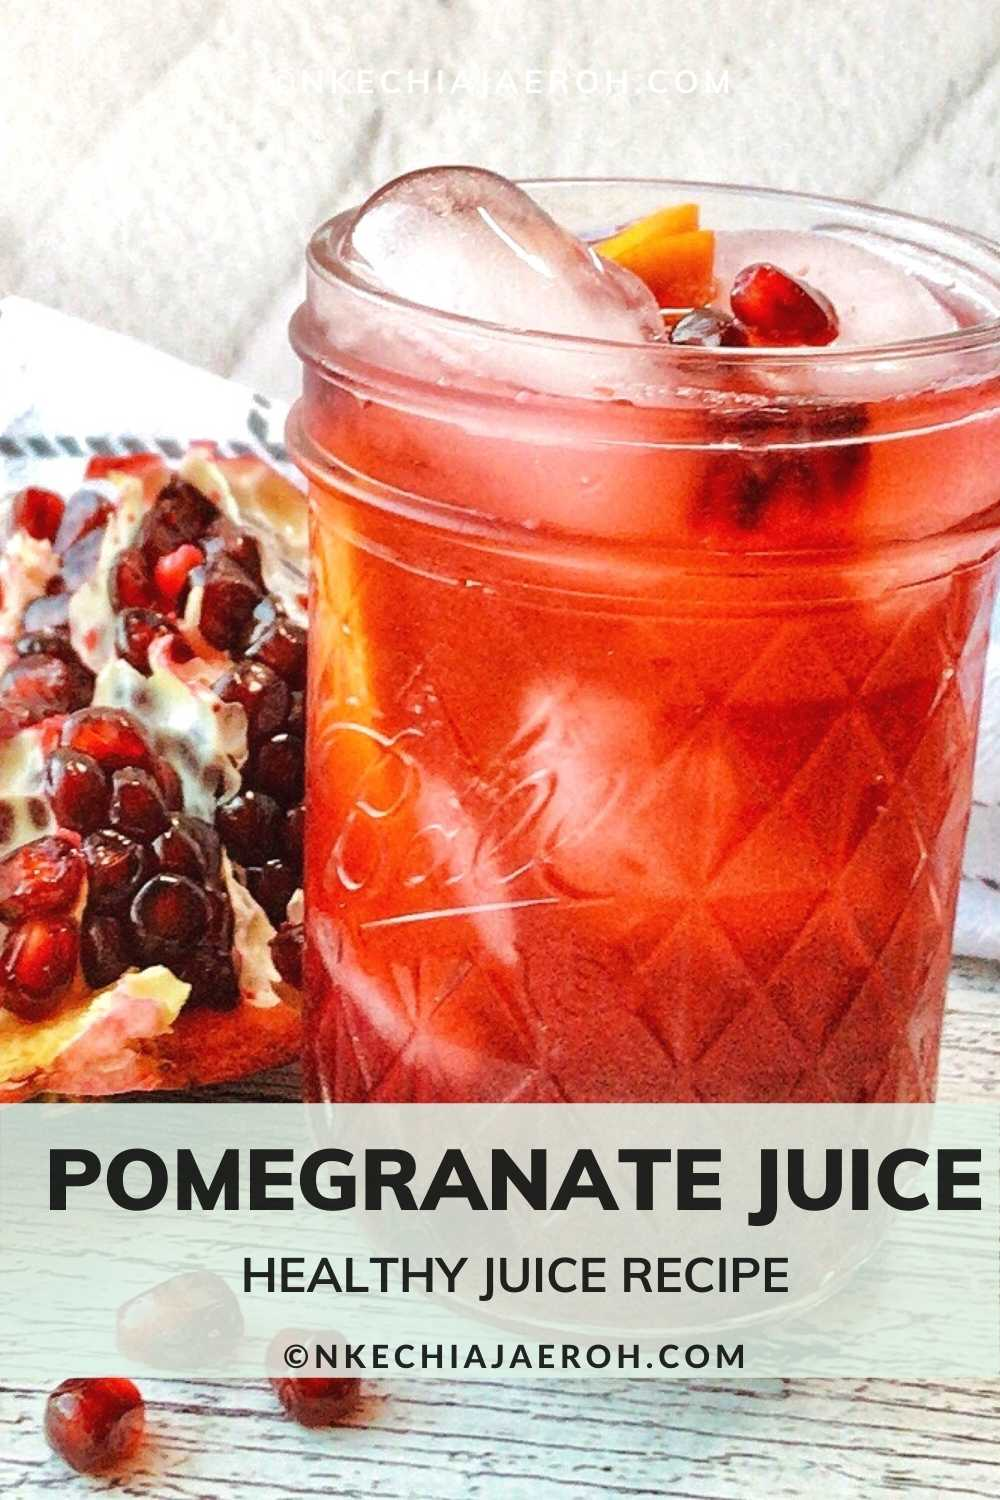 Pomegranate juice is sweet, tart, refreshing, and very nutritious. If you haven't had pomegranate juice before, stop it. Go make yourself some after reading this post! Today I am excited to share with you this very easy pomegranate juice recipe. This recipe requires two cups of pomegranate seeds, also known as arils; if you do not know how to seed a pomegranate, check my post on how to deseed a pomegranate.Juicing pomegranate is as simple as ABC; you can juice pomegranate with a blender or without a blender. However, this pomegranate juice recipe uses a blender.